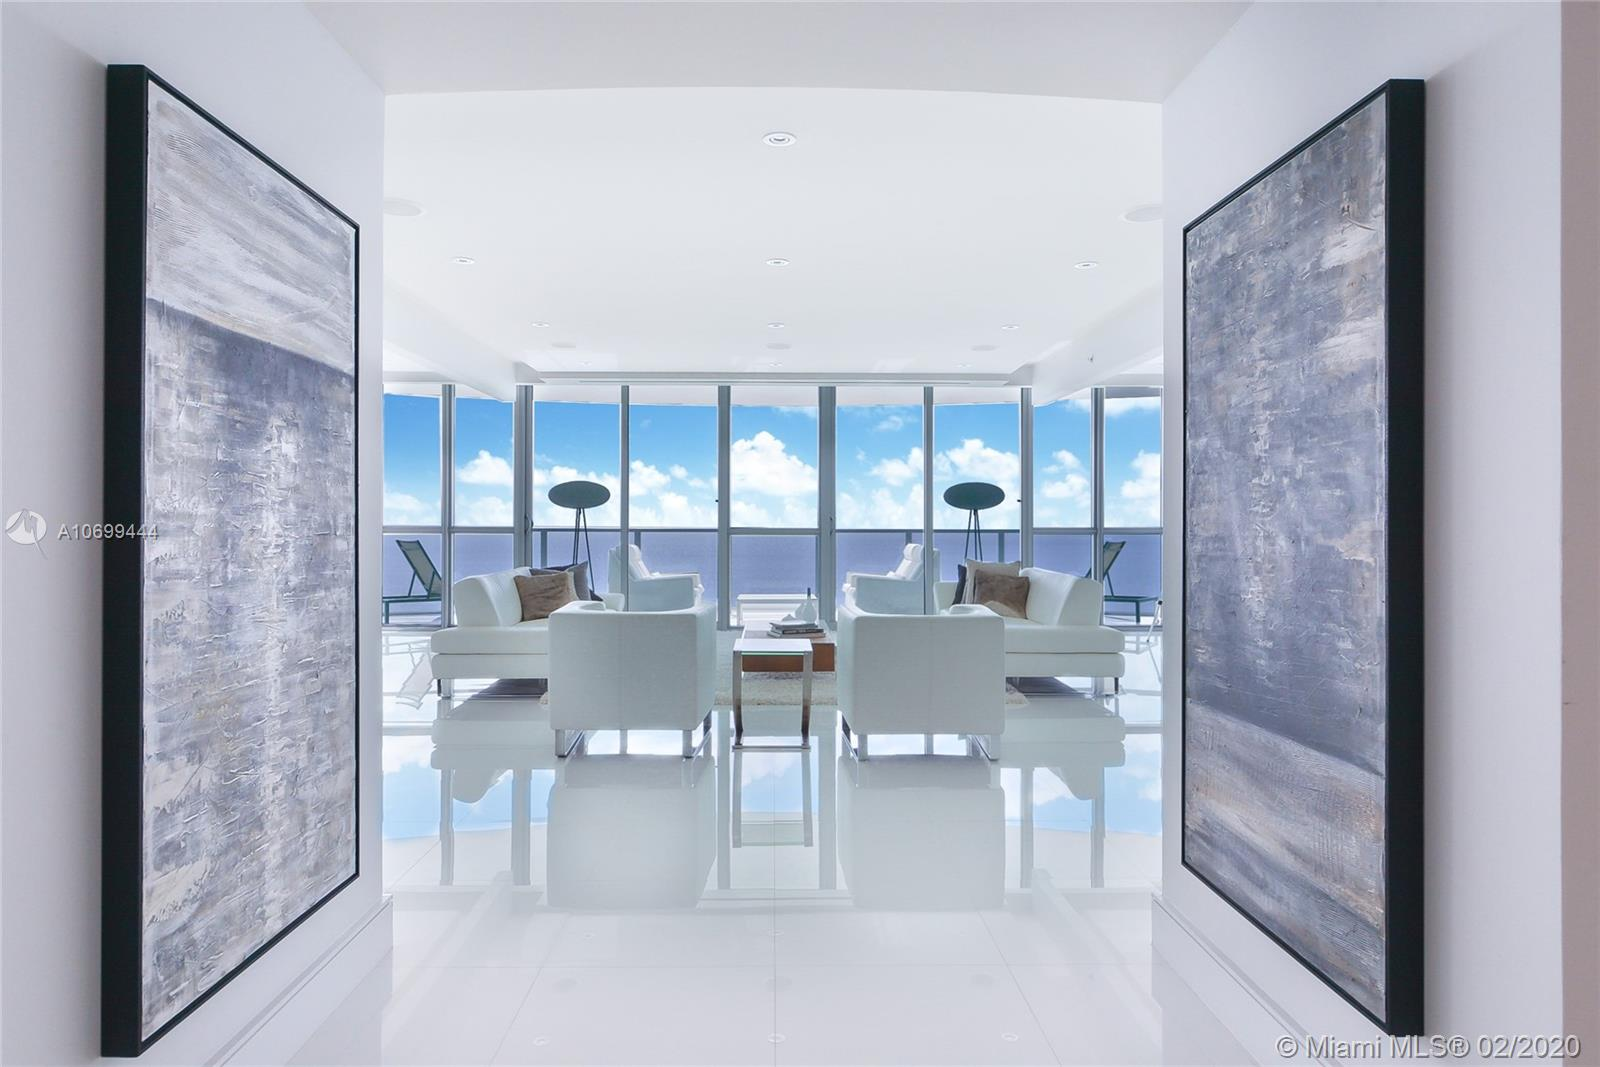 HOLLYWOOD GEM, OCEAN PALMS LUXURY CONDOMINIUM. By far the most compelling 3BR converted to 4BR floor plan in the area. Private elevator leads into a VERY EXCLUSIVE BRIGHT, OCEAN FACING UNIT. This breathtaking 08 line property provides SPECTACULAR VIEWS from the 10th floor where panoramic ocean and beach vistas display the best Hollywood has to offer. This gorgeous, sleek and modern apartment features white glass floors, modern tiled bathrooms, an ultra-luxurious wine room, custom closets, kitchen w/ Miele & Sub-Zero appliances, surround sound system, alarm & more. Professionally decorated. Wide-open 3091SF floor plan. Outdoor nirvana with over 500SF of entertainment deck for year round sunbathing & outdoor dining. 2 dedicated parking spaces!!!! Furniture for sale!